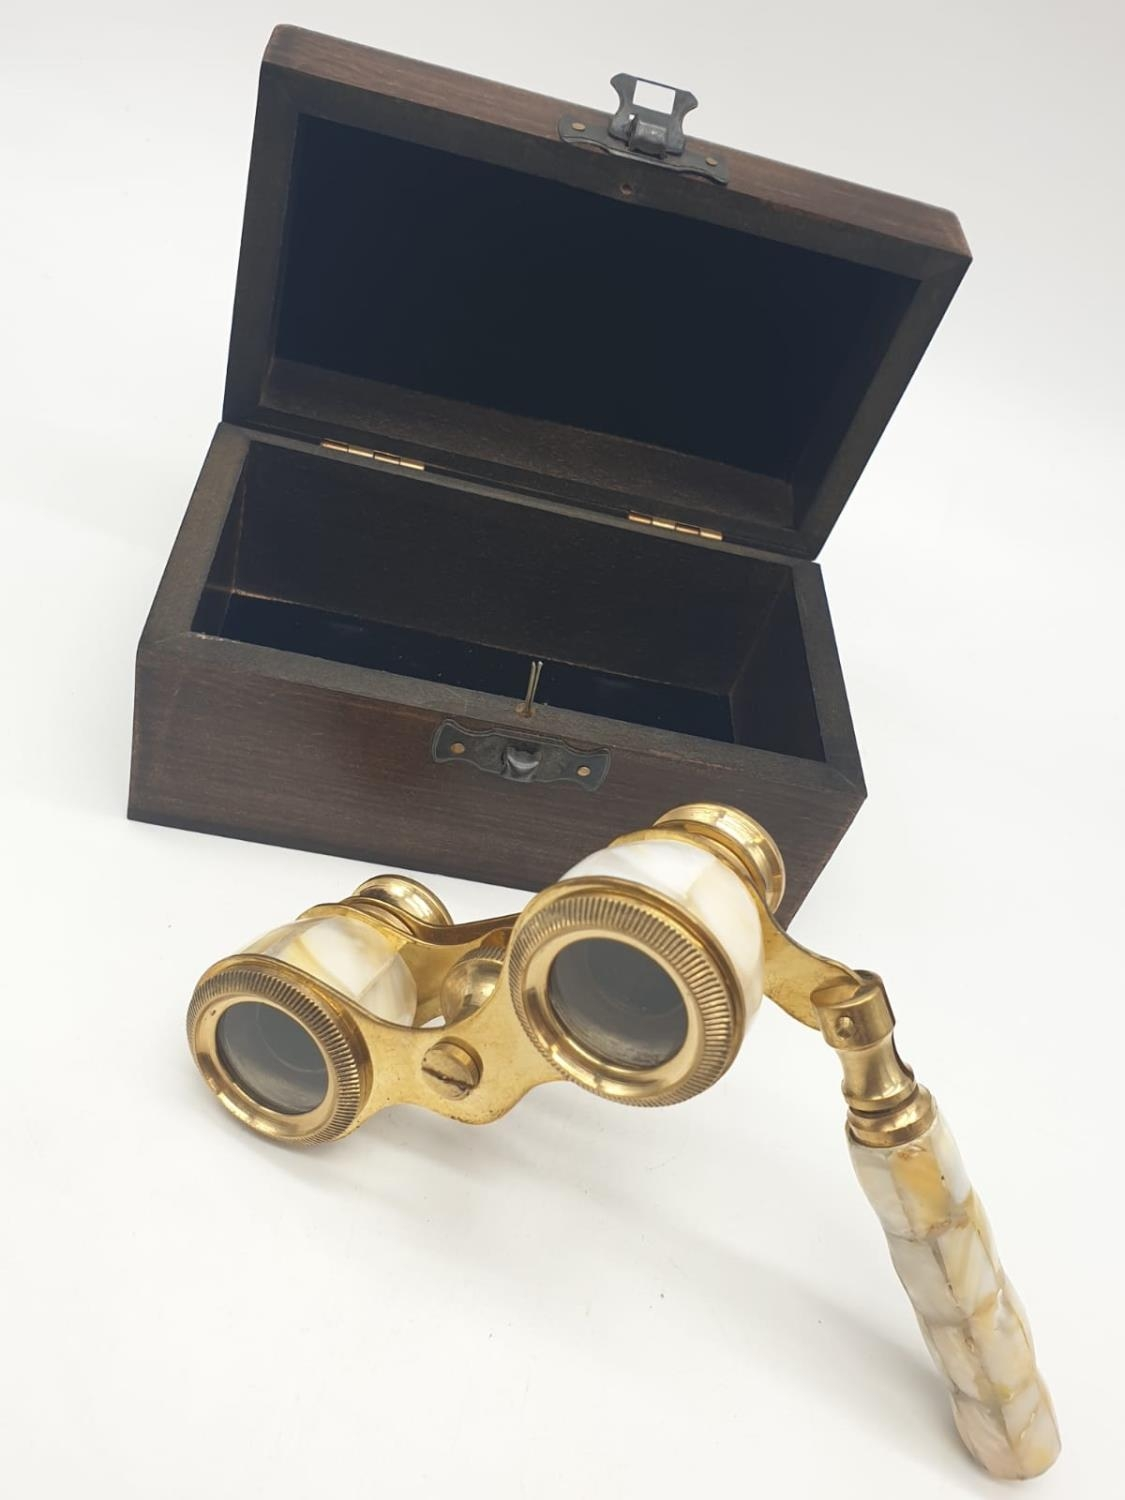 1920's Mother of Pearl & Brass opera glasses with folding handle, in wooden box. 13x7cm.